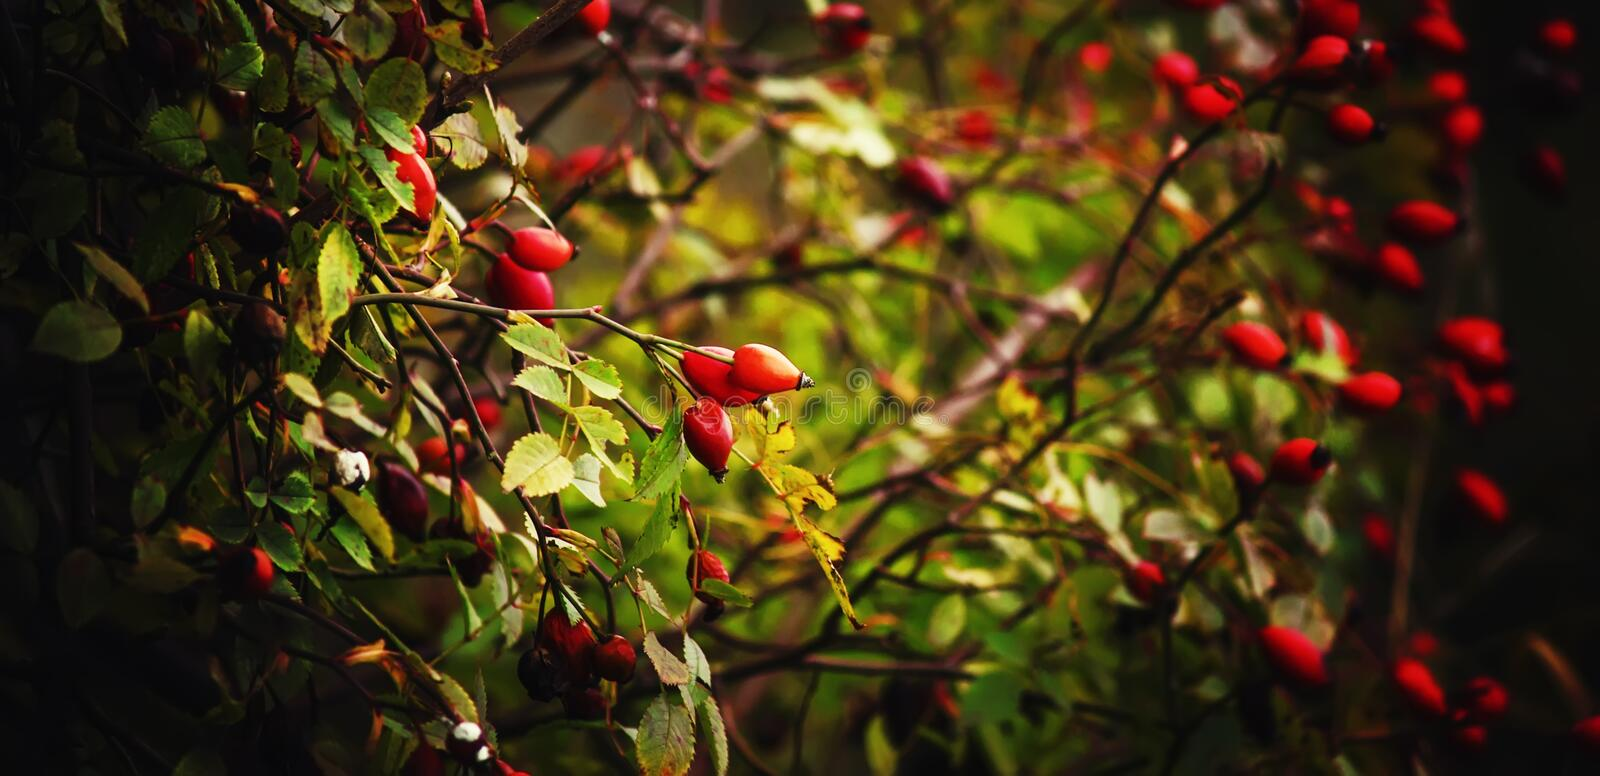 Autumn natural background, rosehip berries on the bush, selective focus and shallow depth of field royalty free stock photography